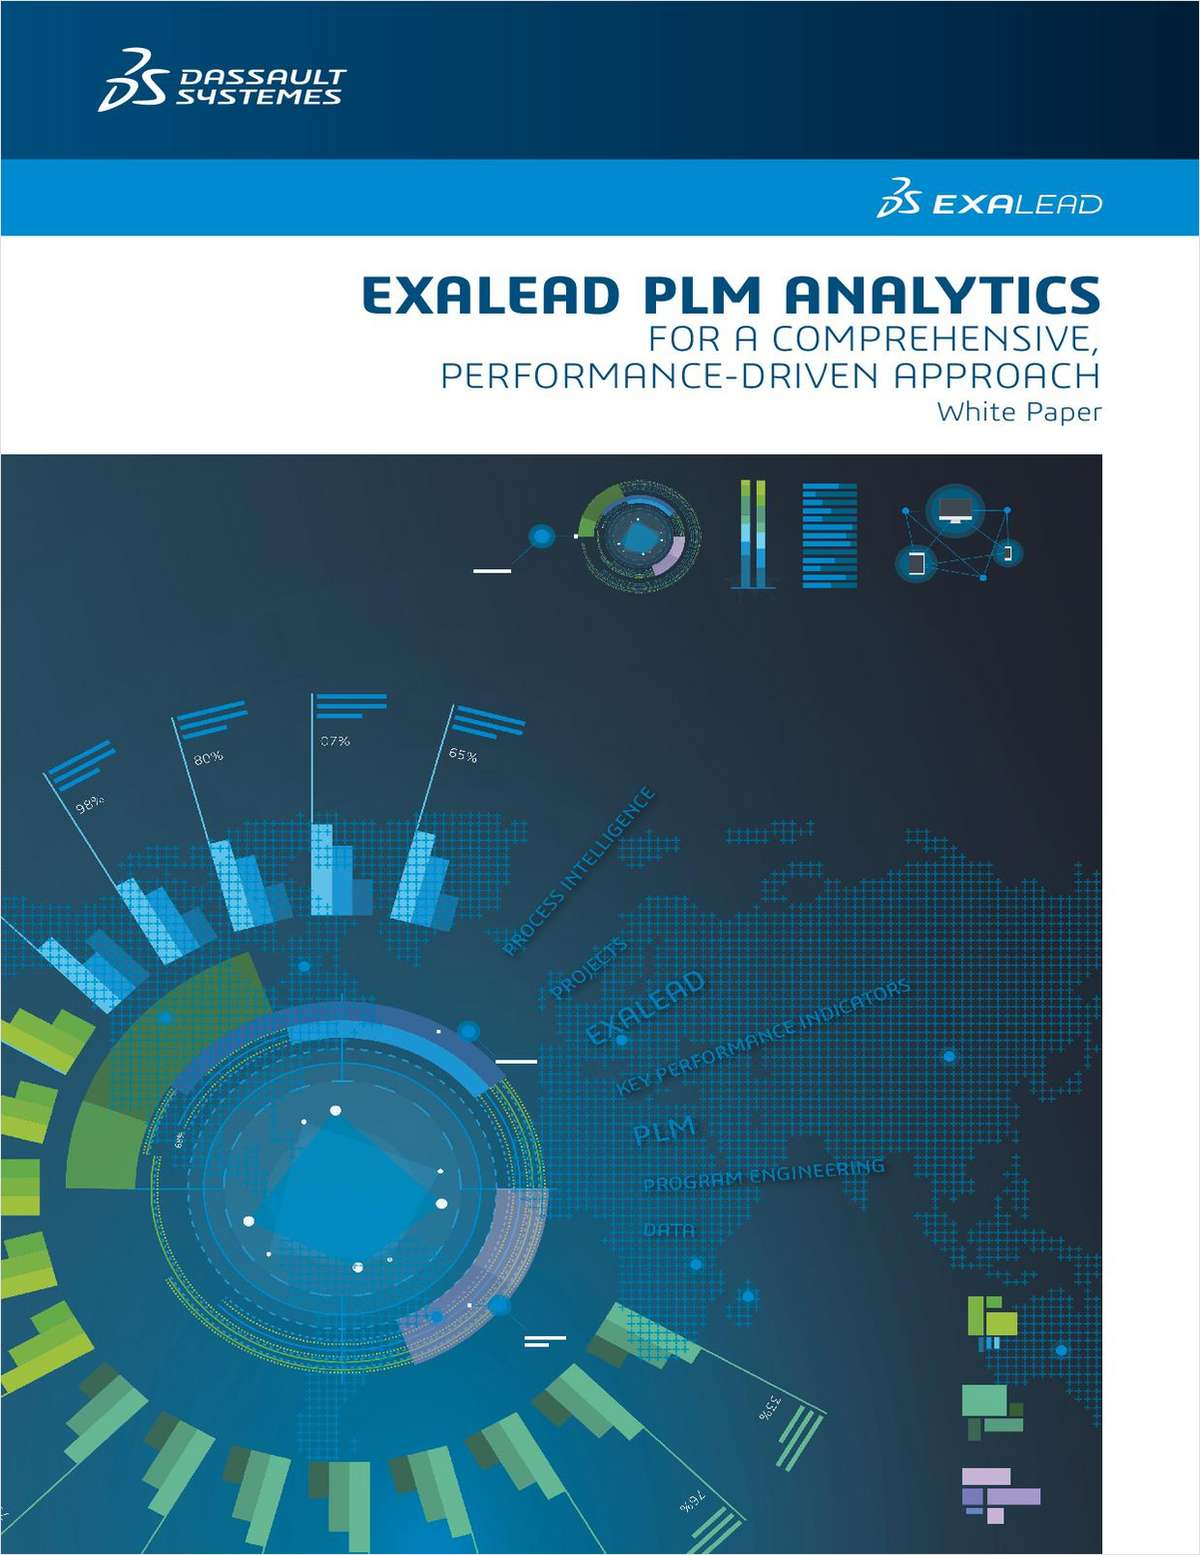 Exalead PLM Analytics: For A Comprehensive Performance-Driven Approach